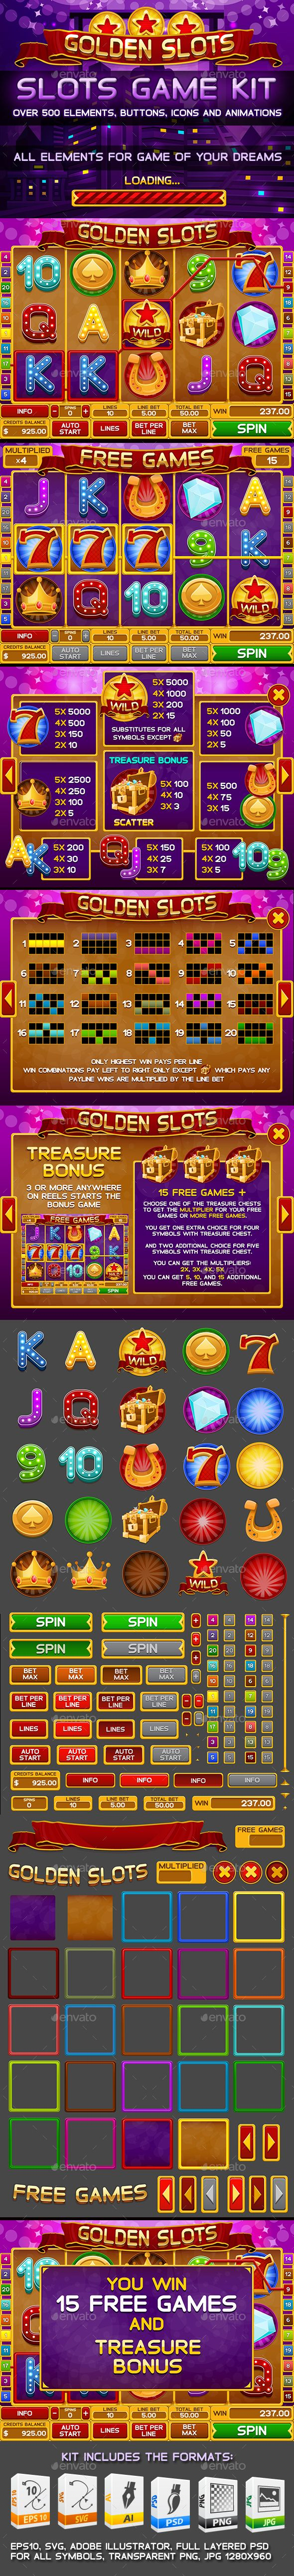 Golden Slots Game Kit  — PSD Template #diamond #vector • Download ➝ https://graphicriver.net/item/golden-slots-game-kit/9654983?ref=pxcr